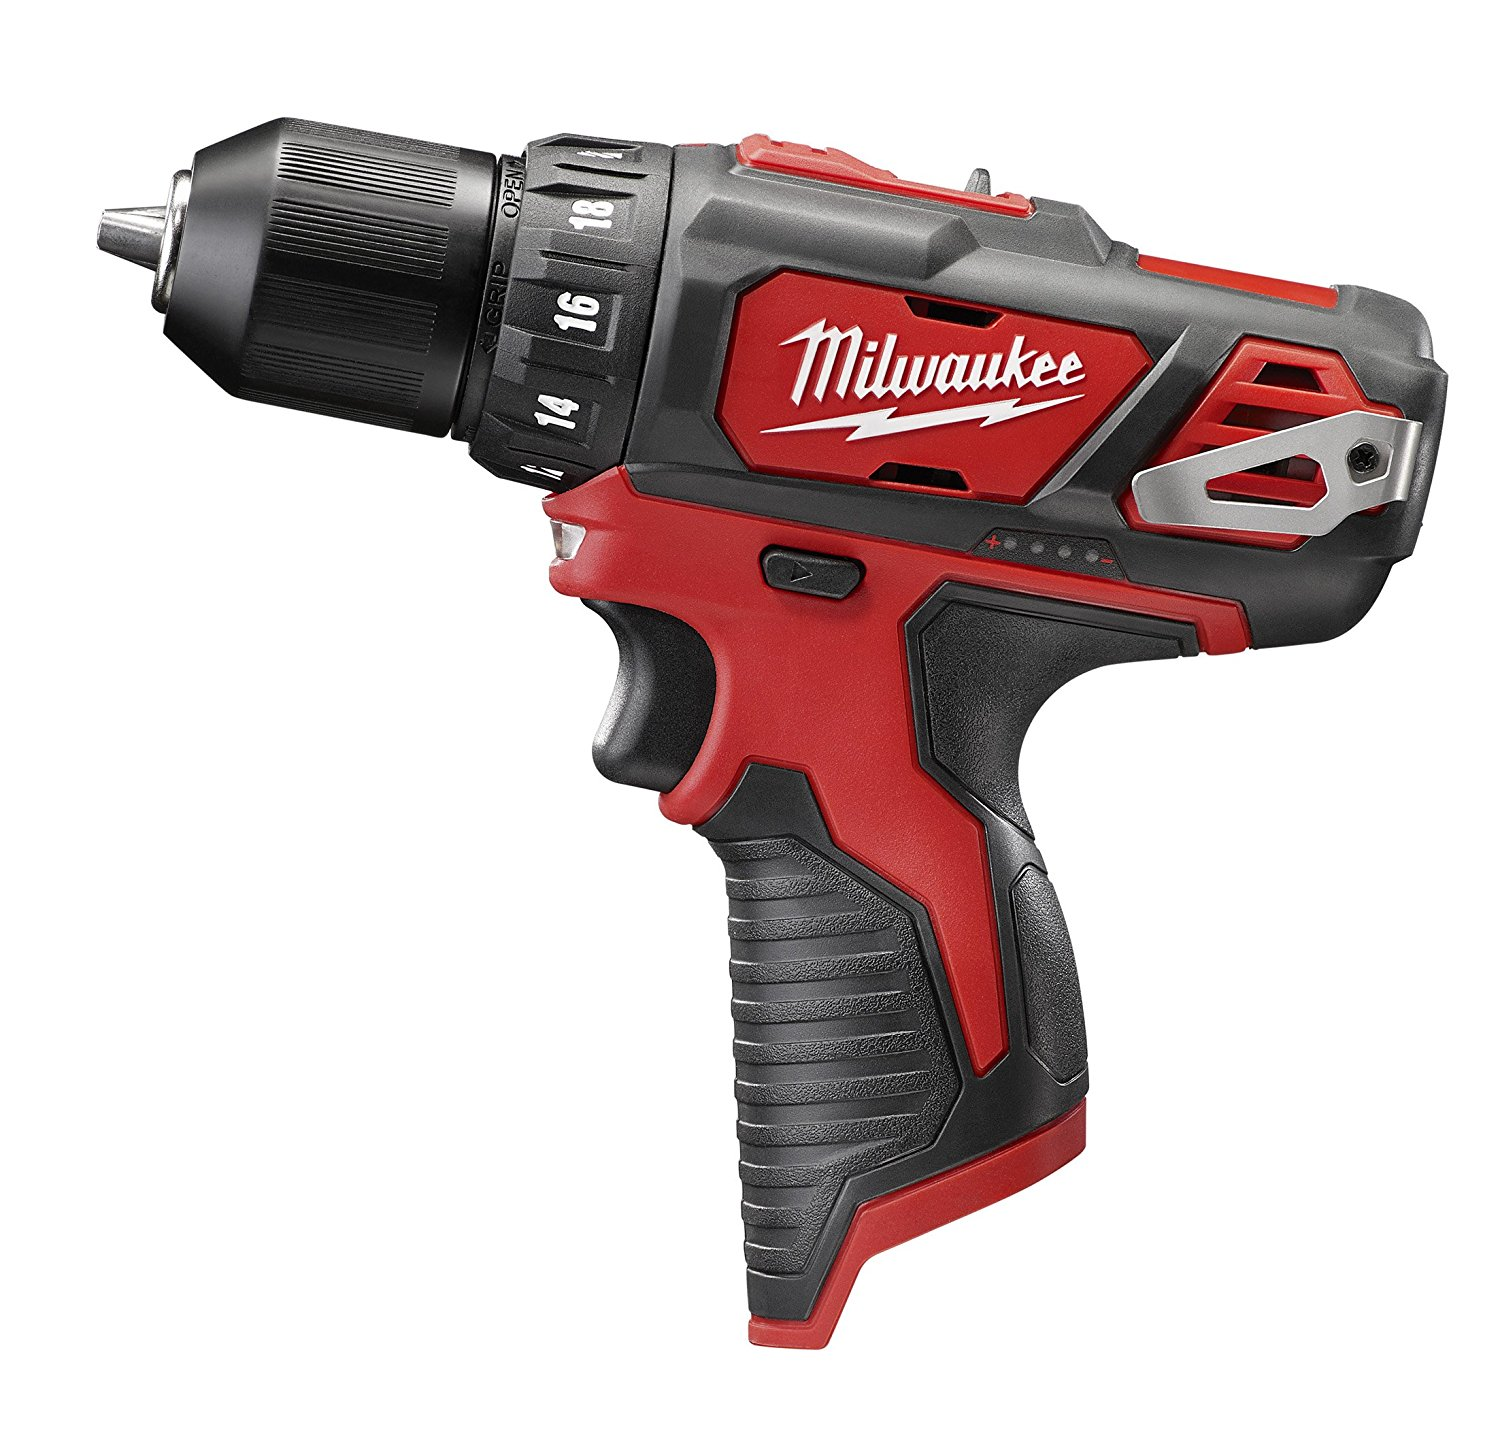 Milwaukee 2407-20 M12 3 8 Drill Driver Bare by